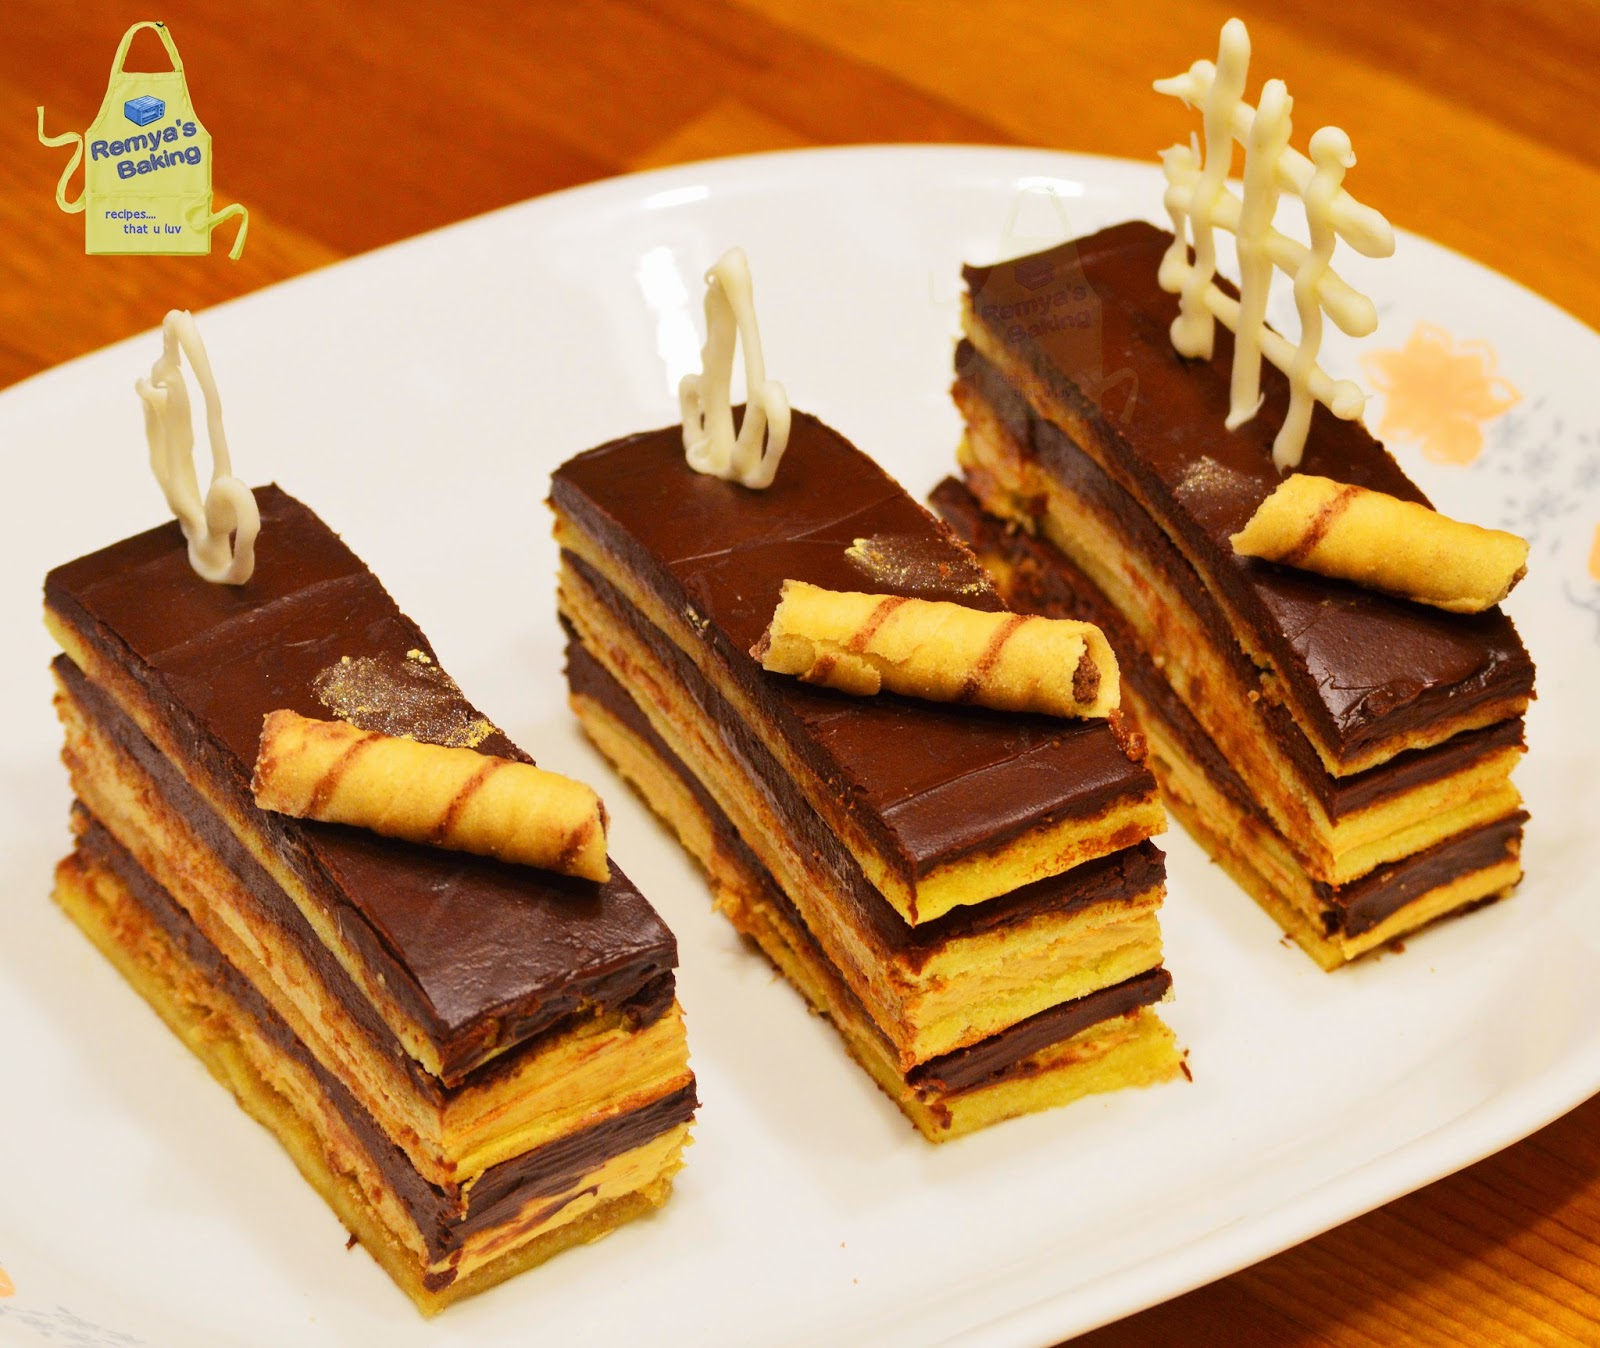 Gateaux Opera Opera cake Gteau Lopra for my Bday boy